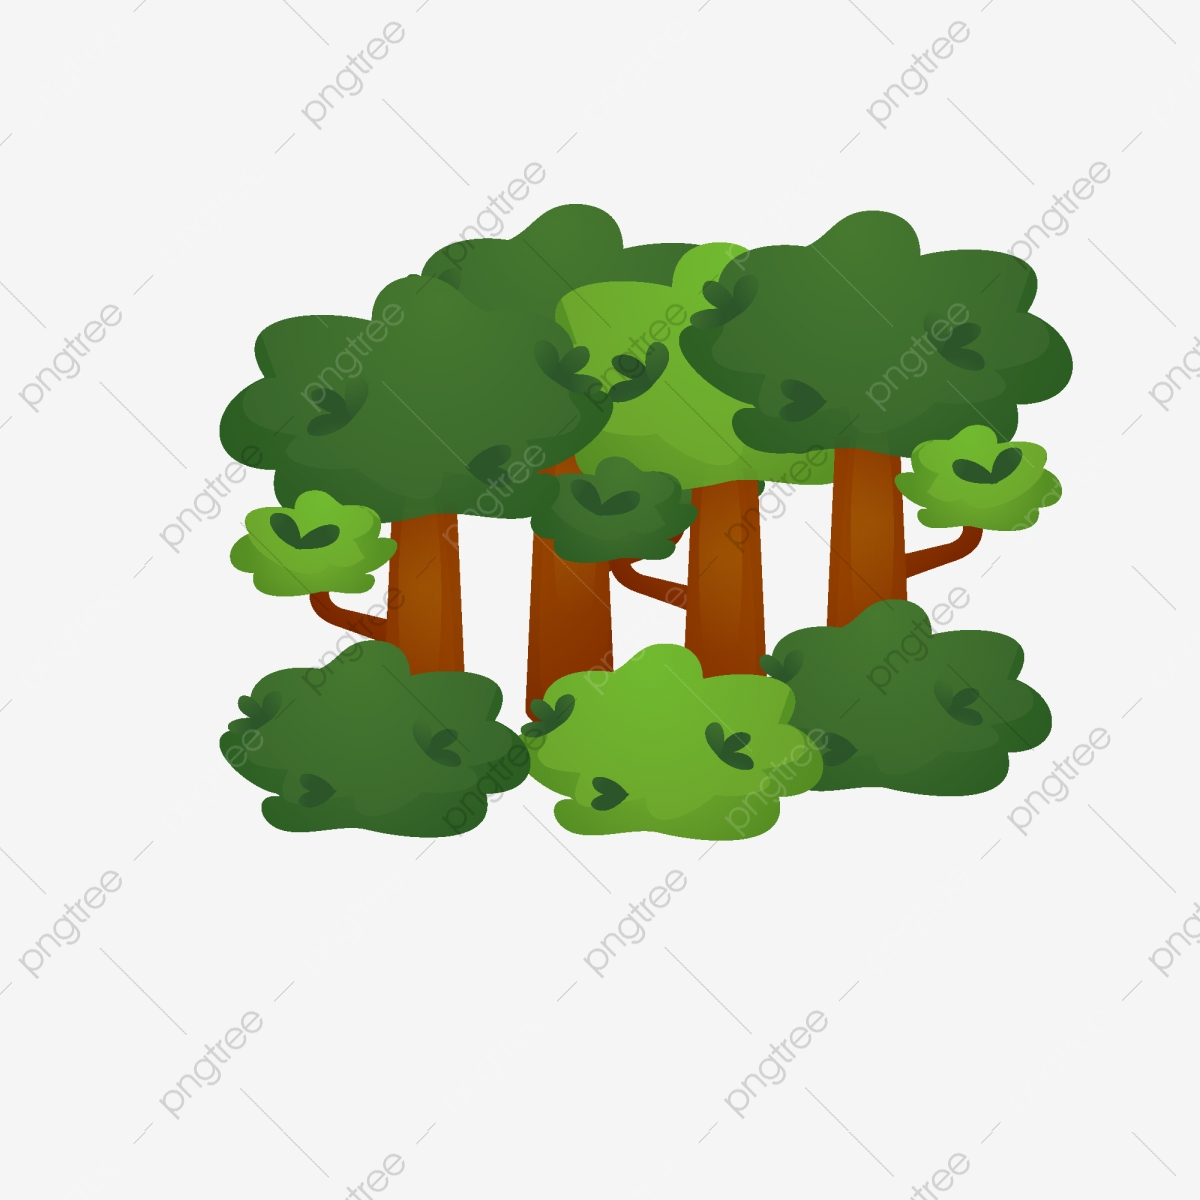 Cartoon Forest Trees Free Map Cartoon Big Forest Green Forest Free Buckle Map Png Transparent Clipart Image And Psd File For Free Download Gold and red christmas decorations on a rotating shiny christmas tree next to beautiful windows. https pngtree com freepng cartoon forest trees free map 4518160 html